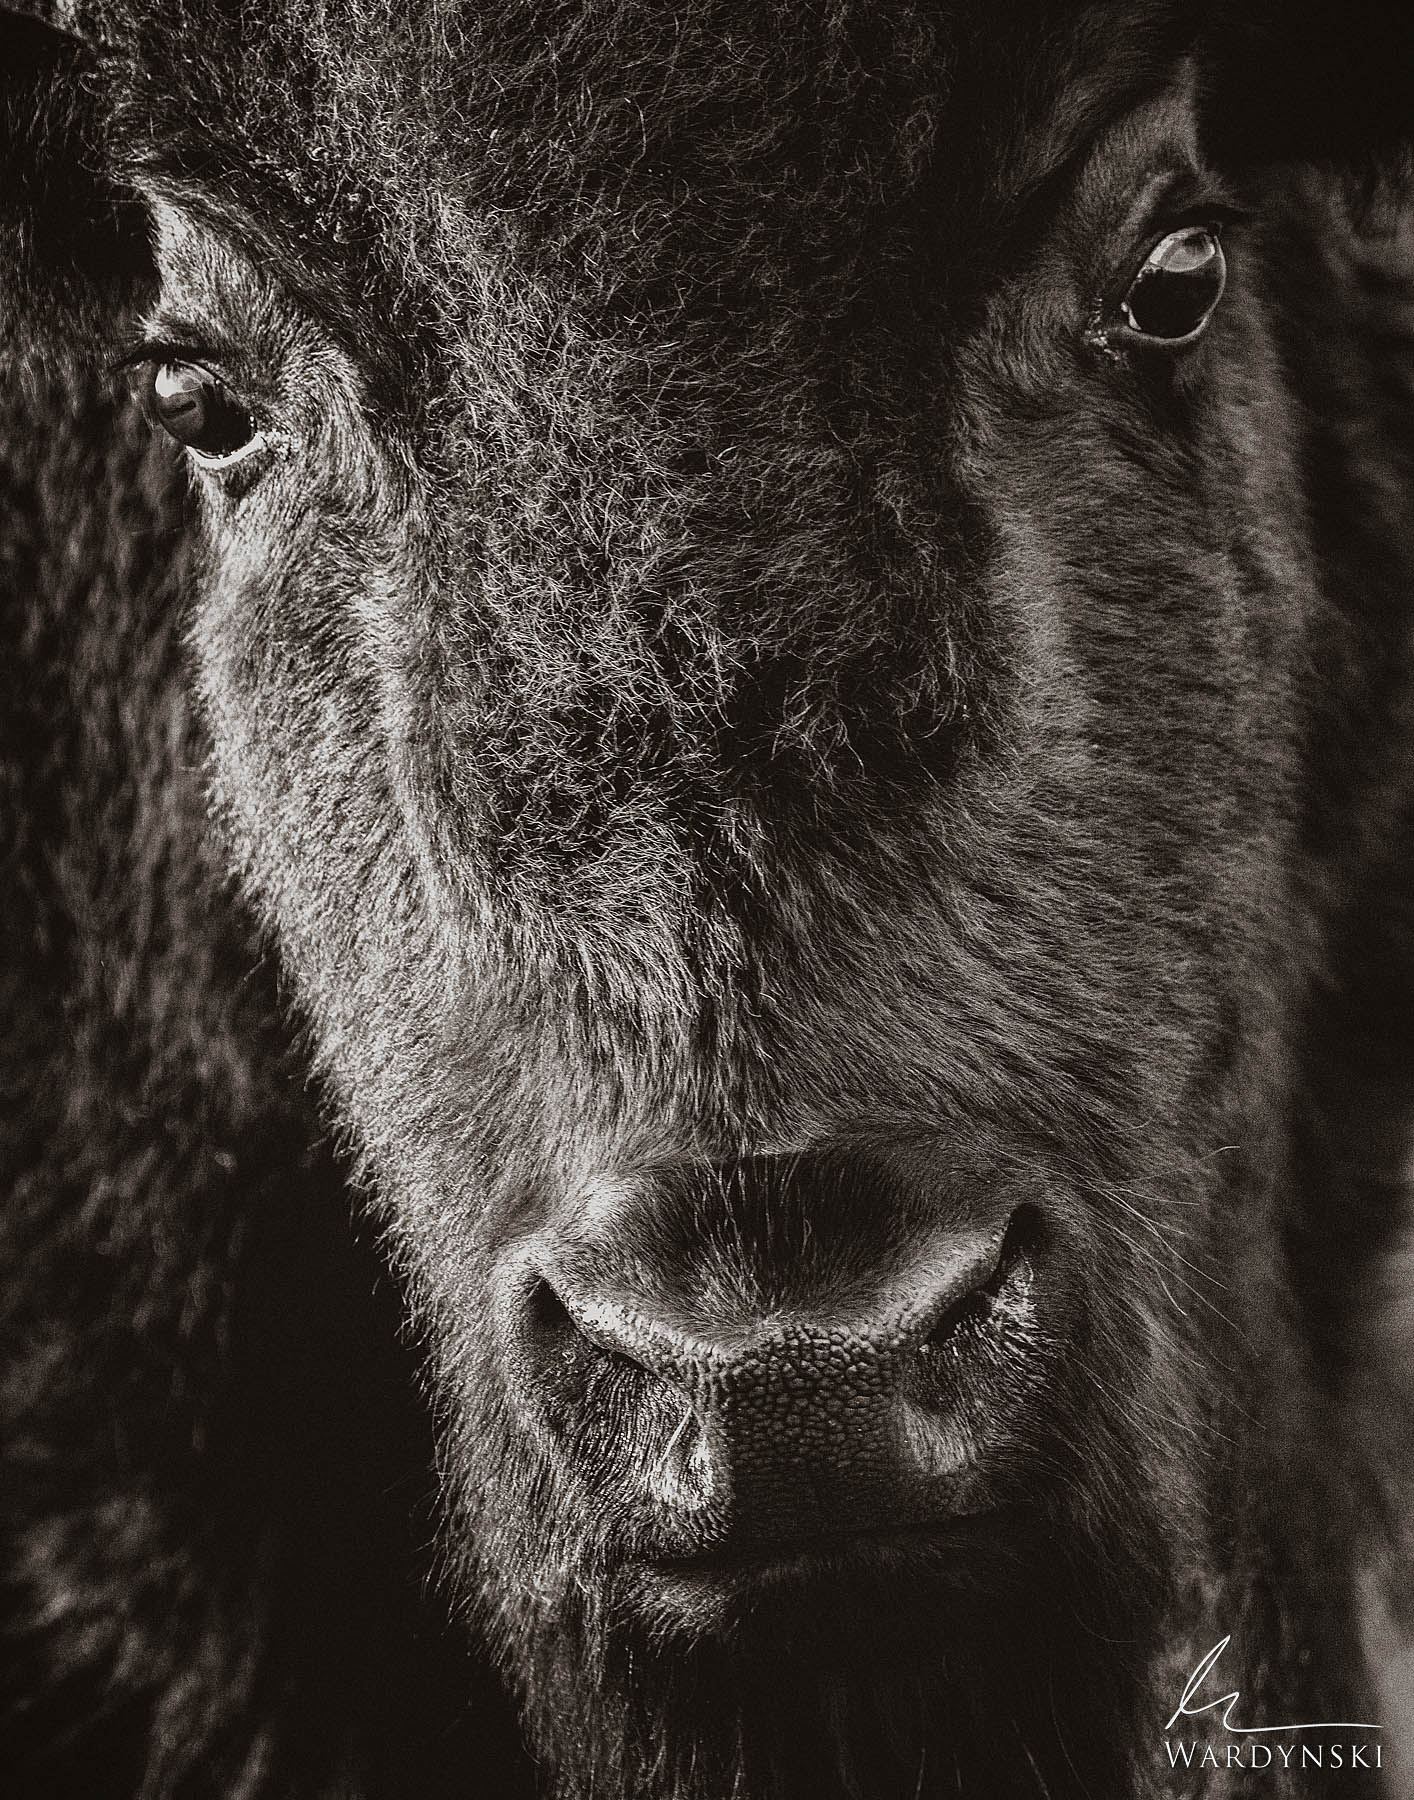 Sepia Fine Art Print | Limited Edition of 100  The American Bison is unlike any other wildlife in the United States. Perhaps...